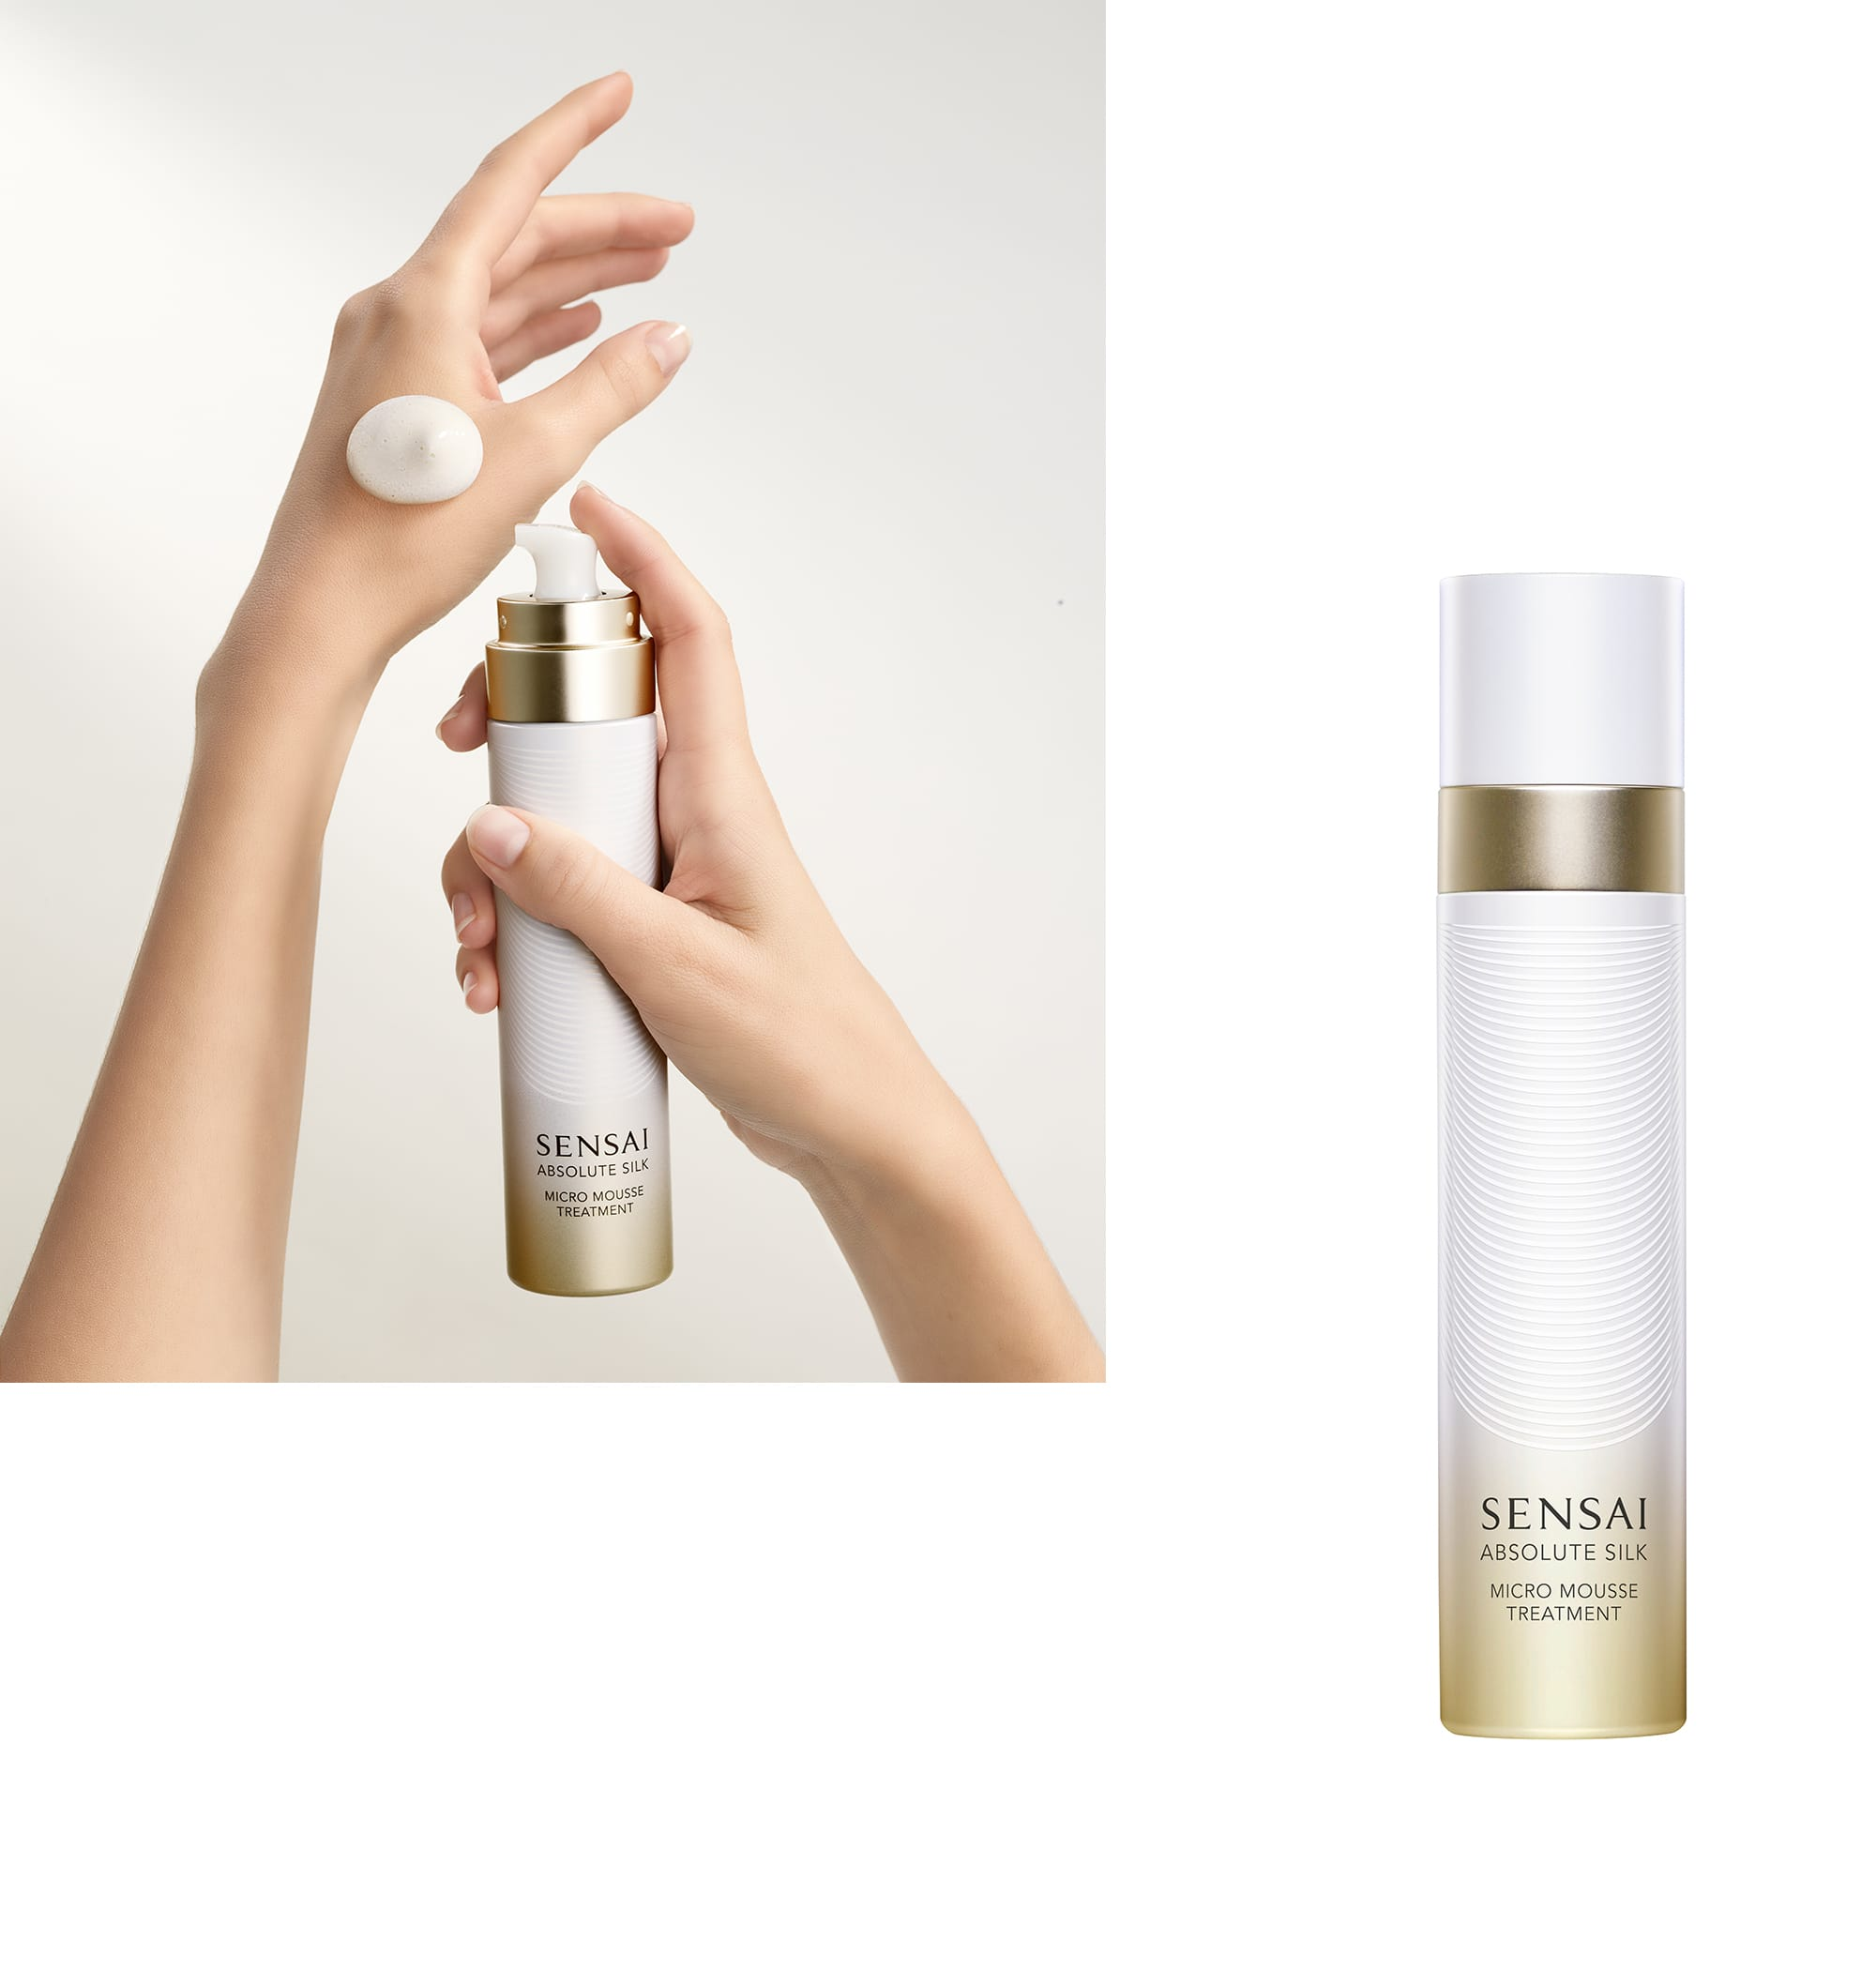 SENSAI AS Micro Mousse Treatment [Skin Lotion] 90ml 18,000 Yen (Tax is not included). This foaming skin lotion resembles a silk cocoon. By hand pressing the lotion foam onto the skin, the lotion spreads, melts and effervesces into the skin.